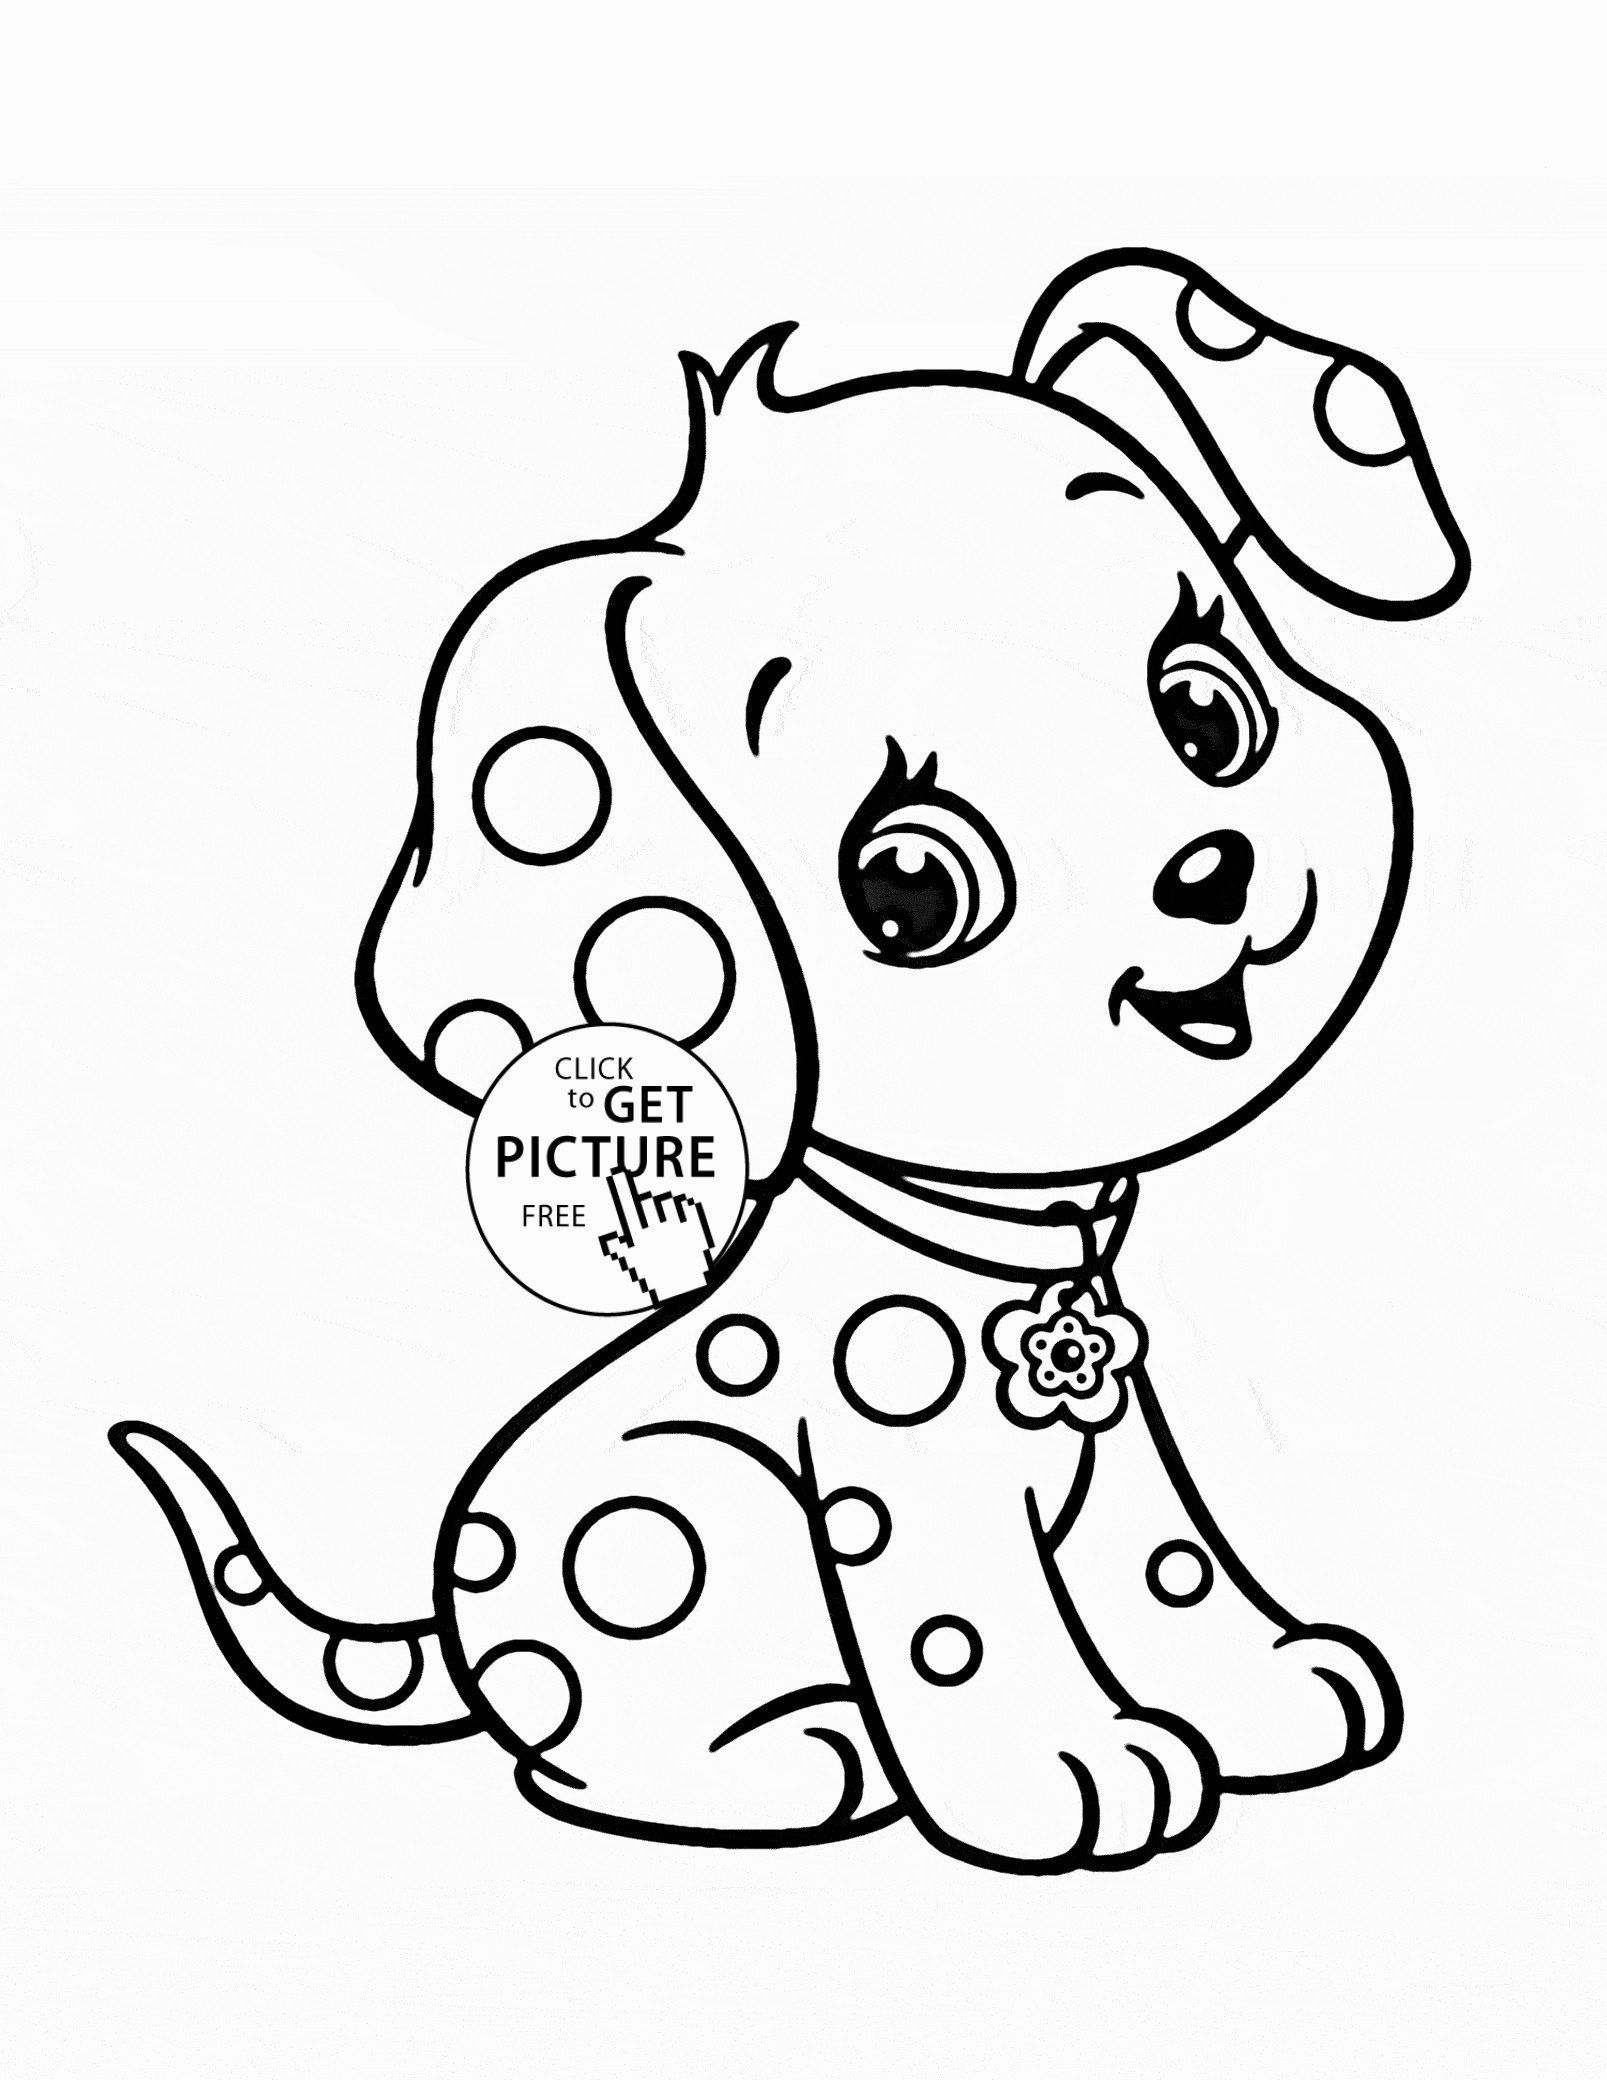 Animals Coloring Esl Fresh Coloring Book For Kids New 21 New Coloring Book Pages For Disney Princess Coloring Pages Unicorn Coloring Pages Puppy Coloring Pages